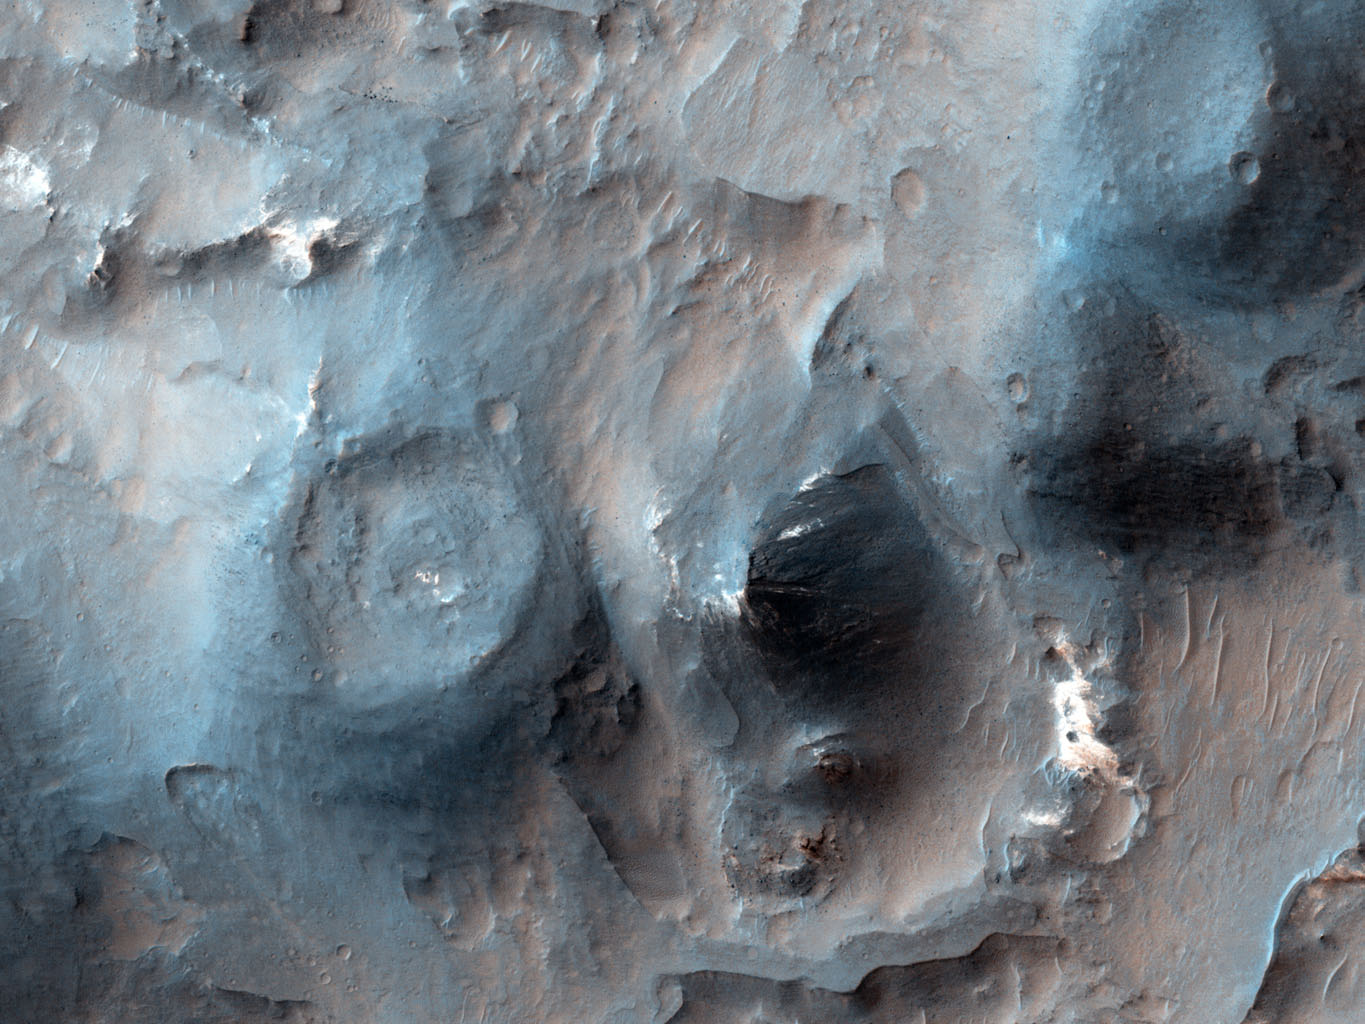 This image from NASA's Mars Reconnaissance Orbiter shows cones with summit pits that are very similar to cinder cones on Earth. They are also very well-preserved, peppered by only small impact craters, so they must be geologically young.